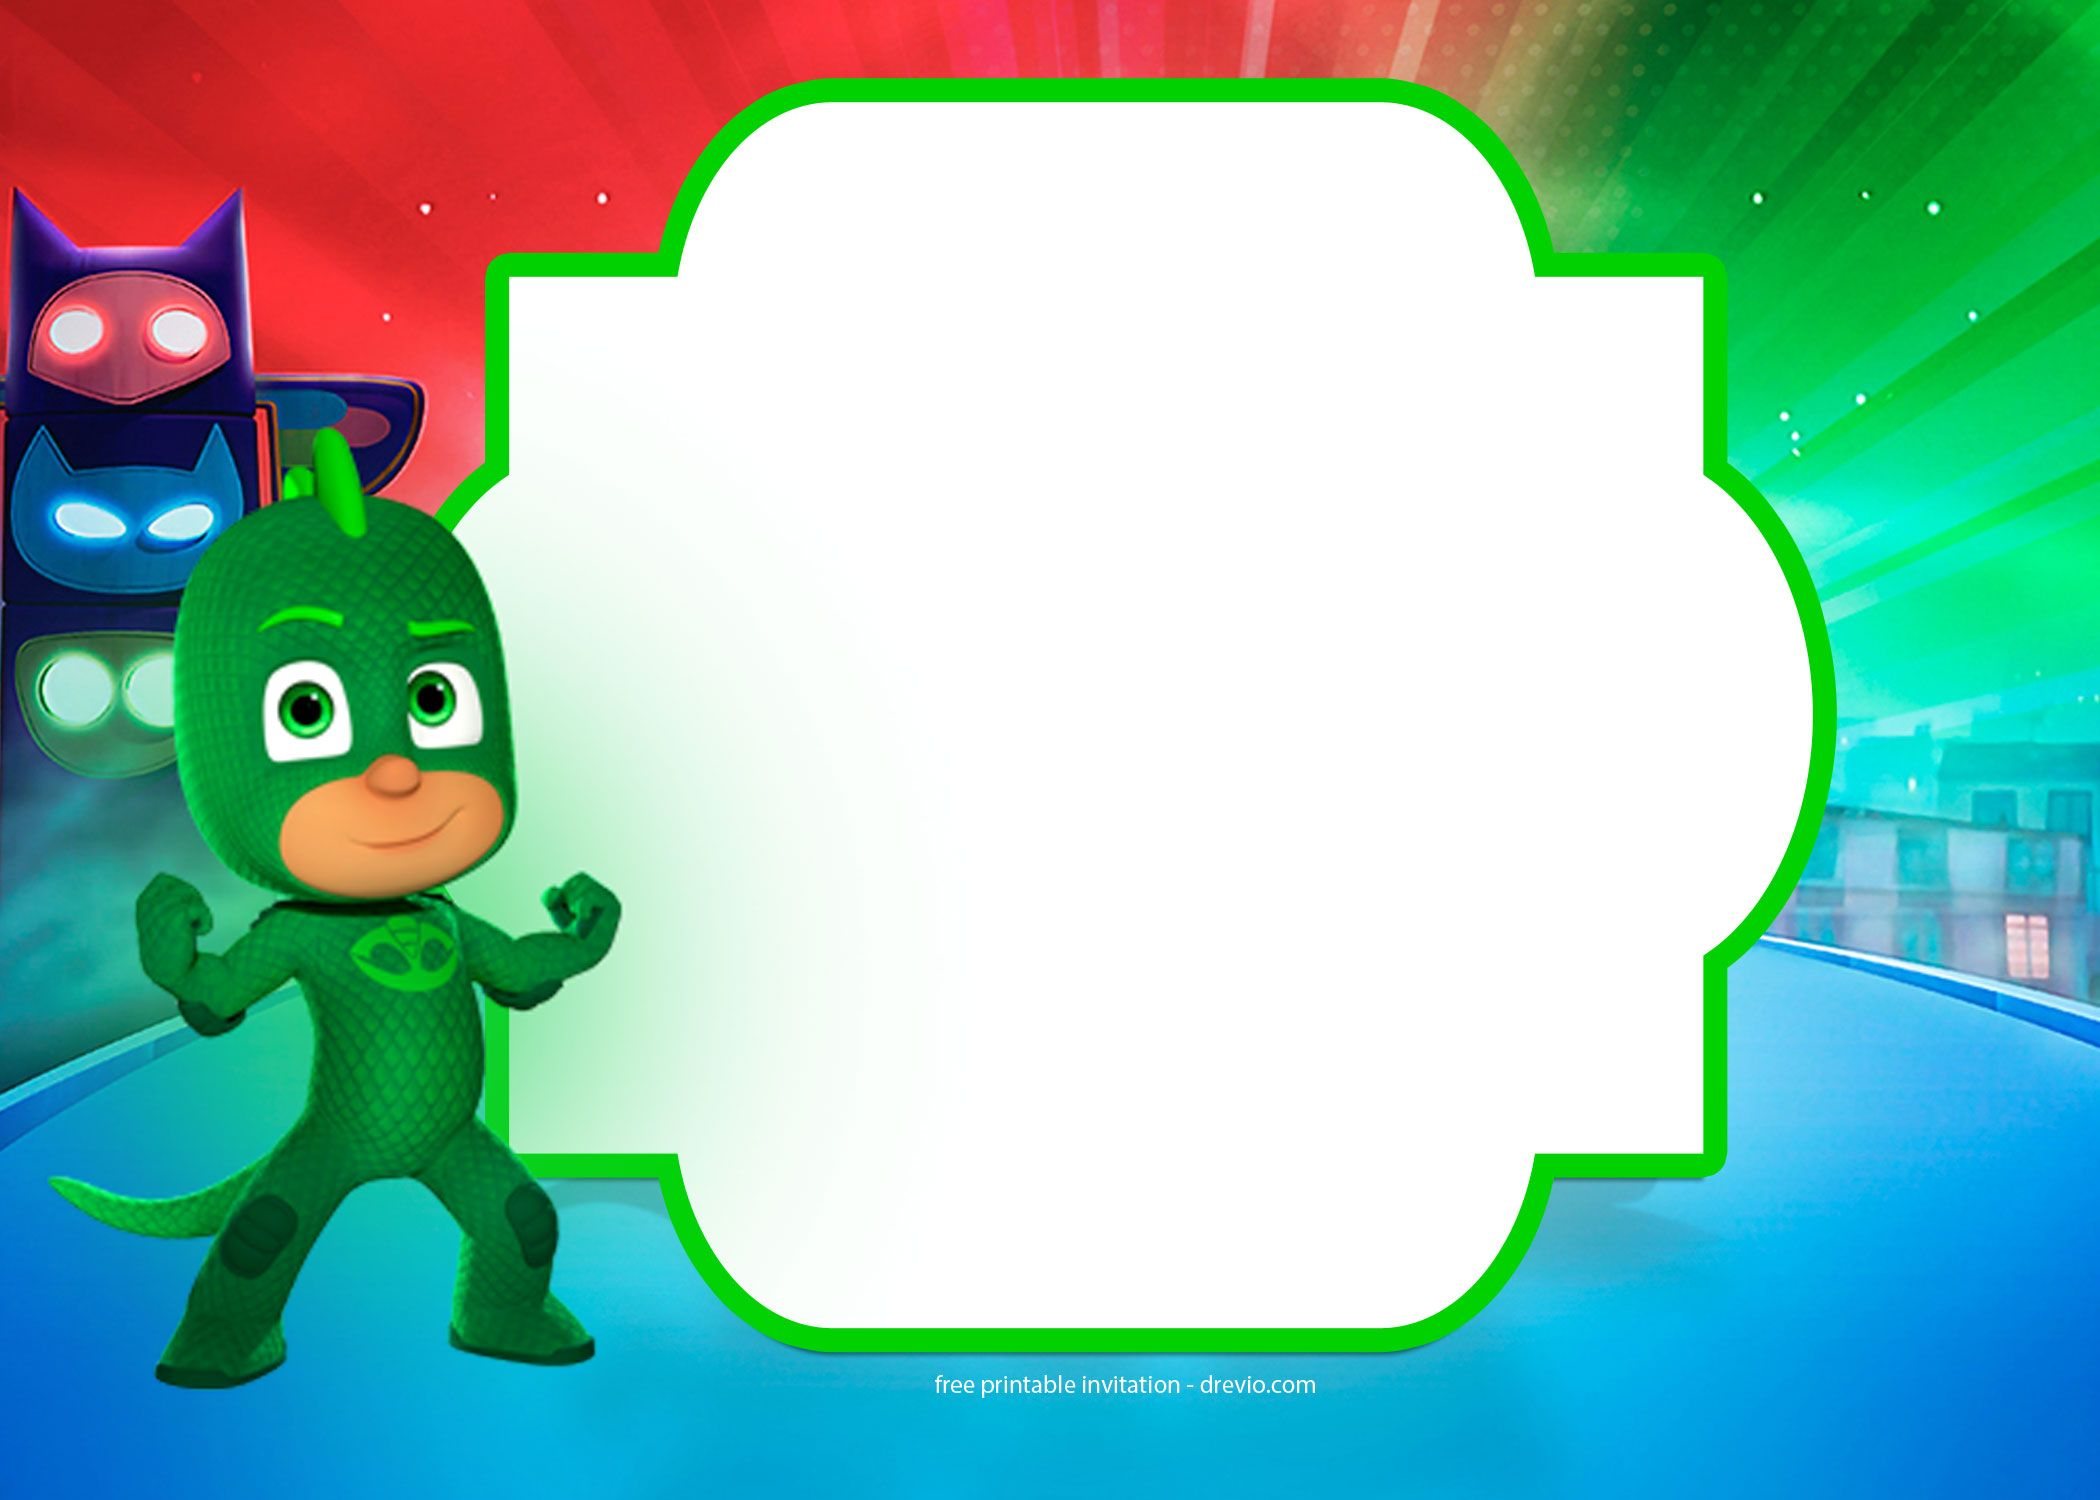 Get FREE PJ Masks Birthday Invitation Templates